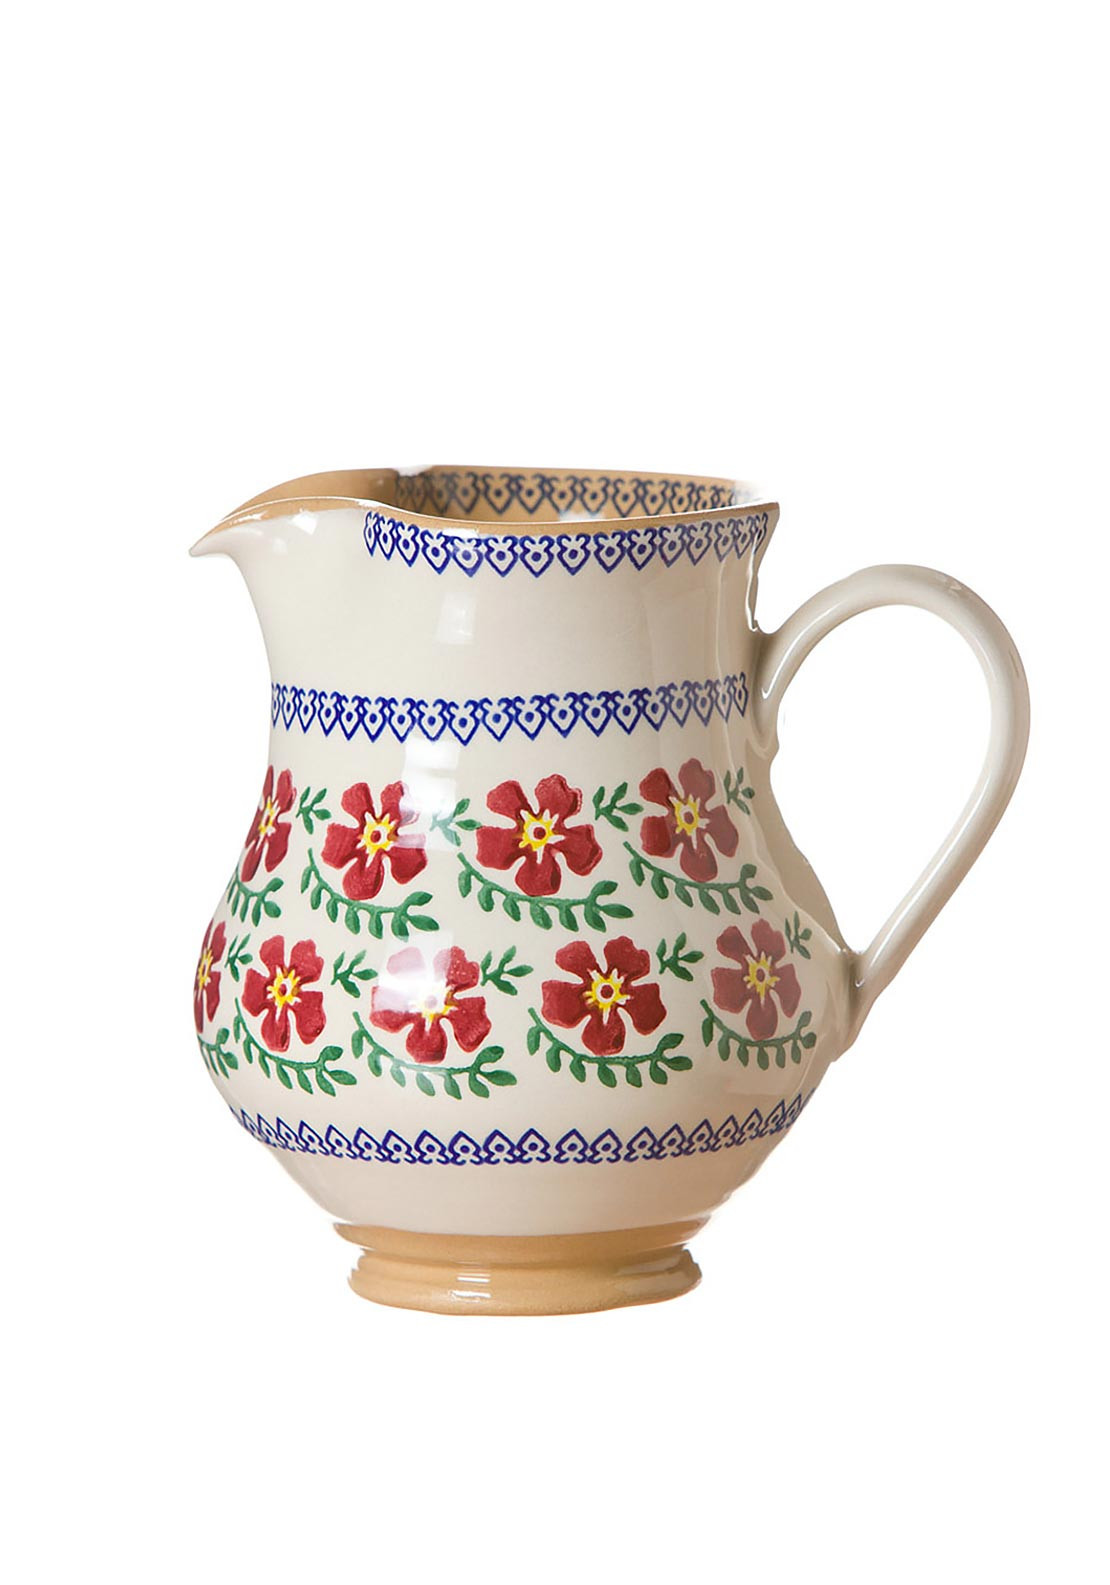 Nicholas Mosse Pottery Old Rose Jug, Medium